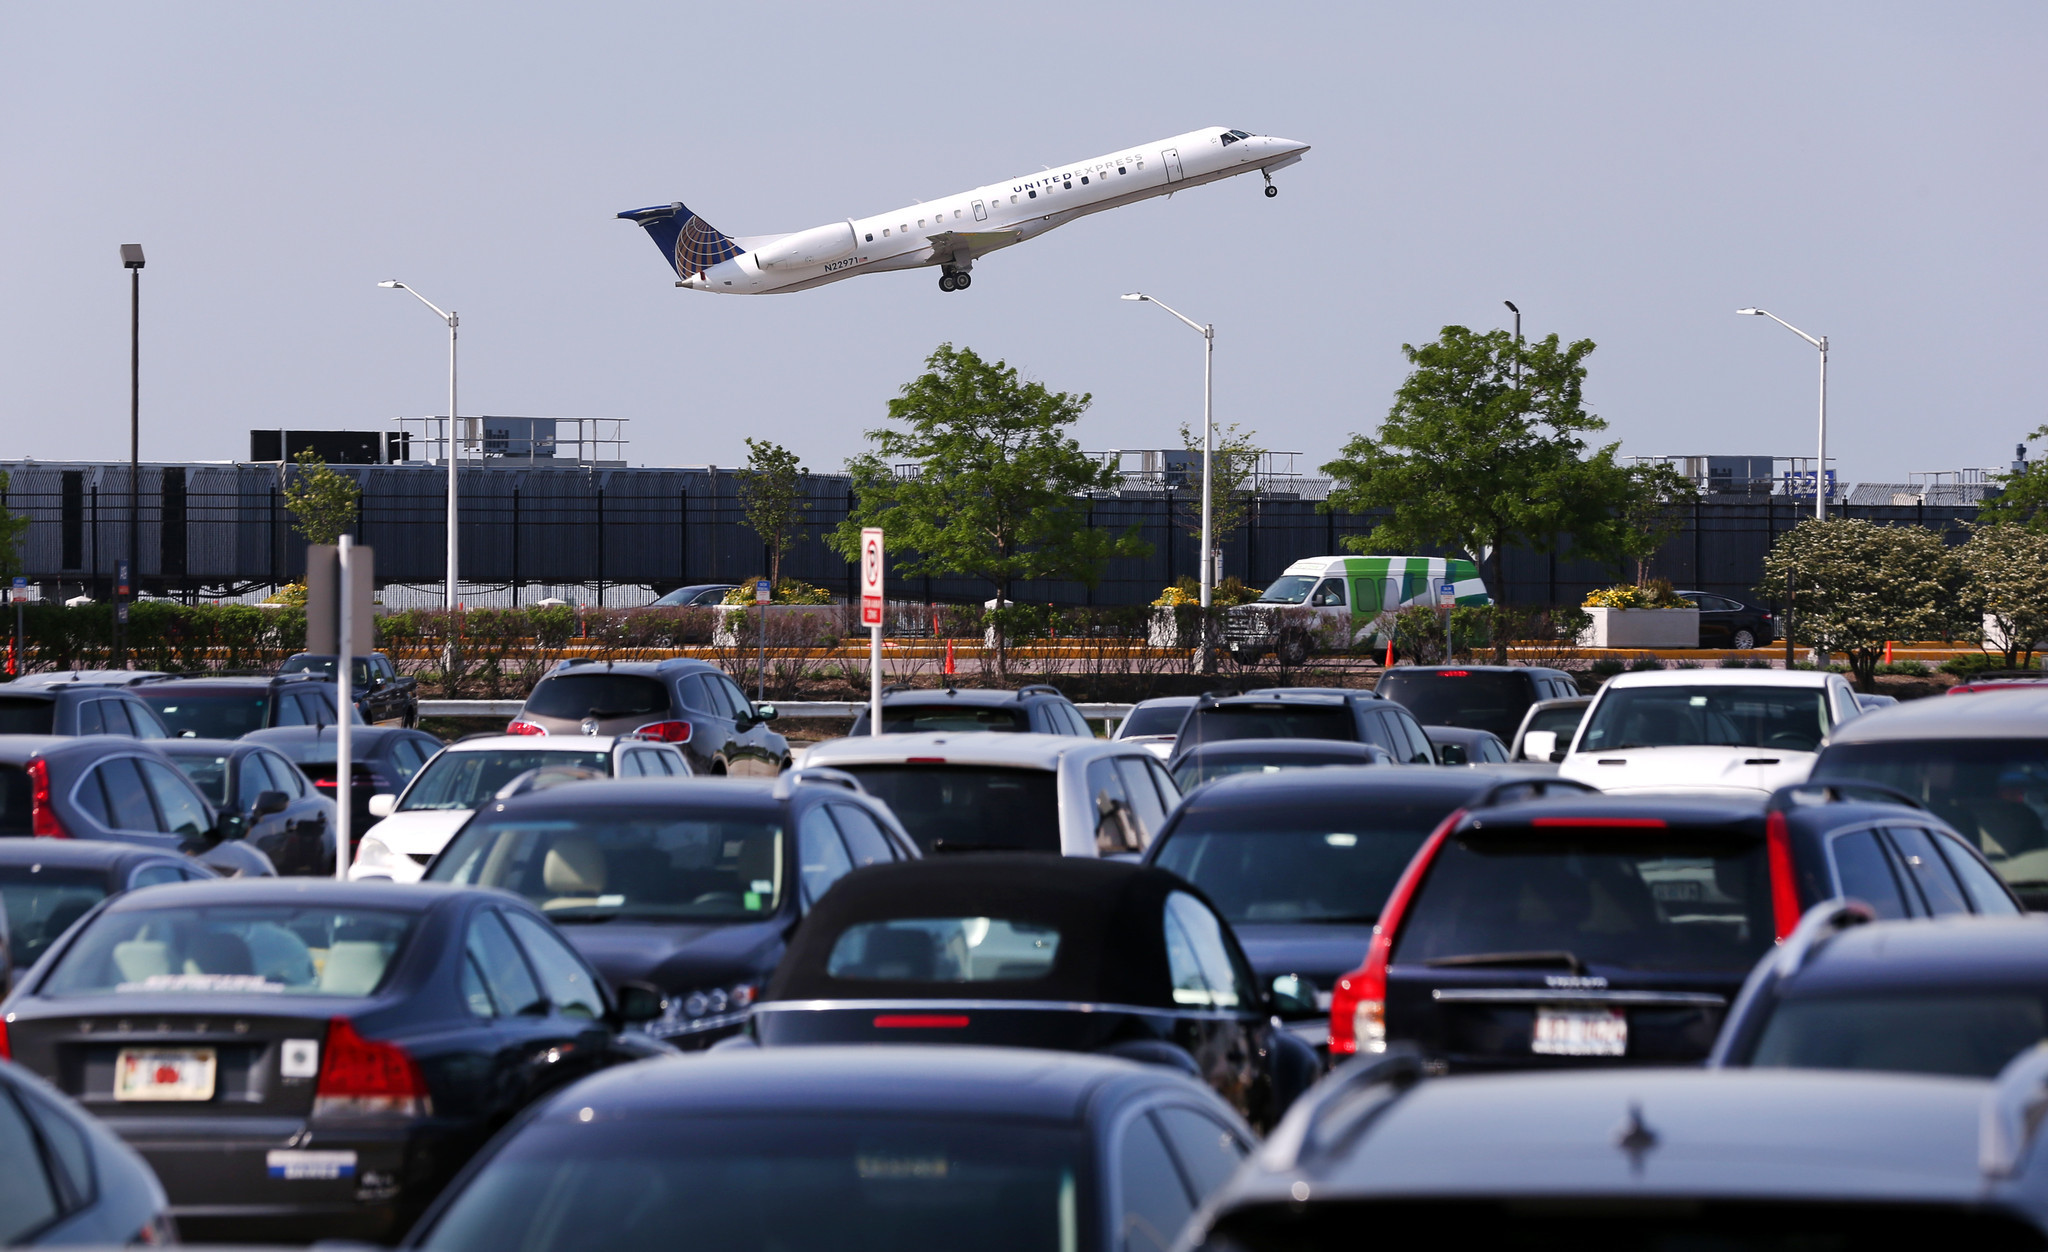 Airport Parking Tips: How To Keep Vehicle Safe?